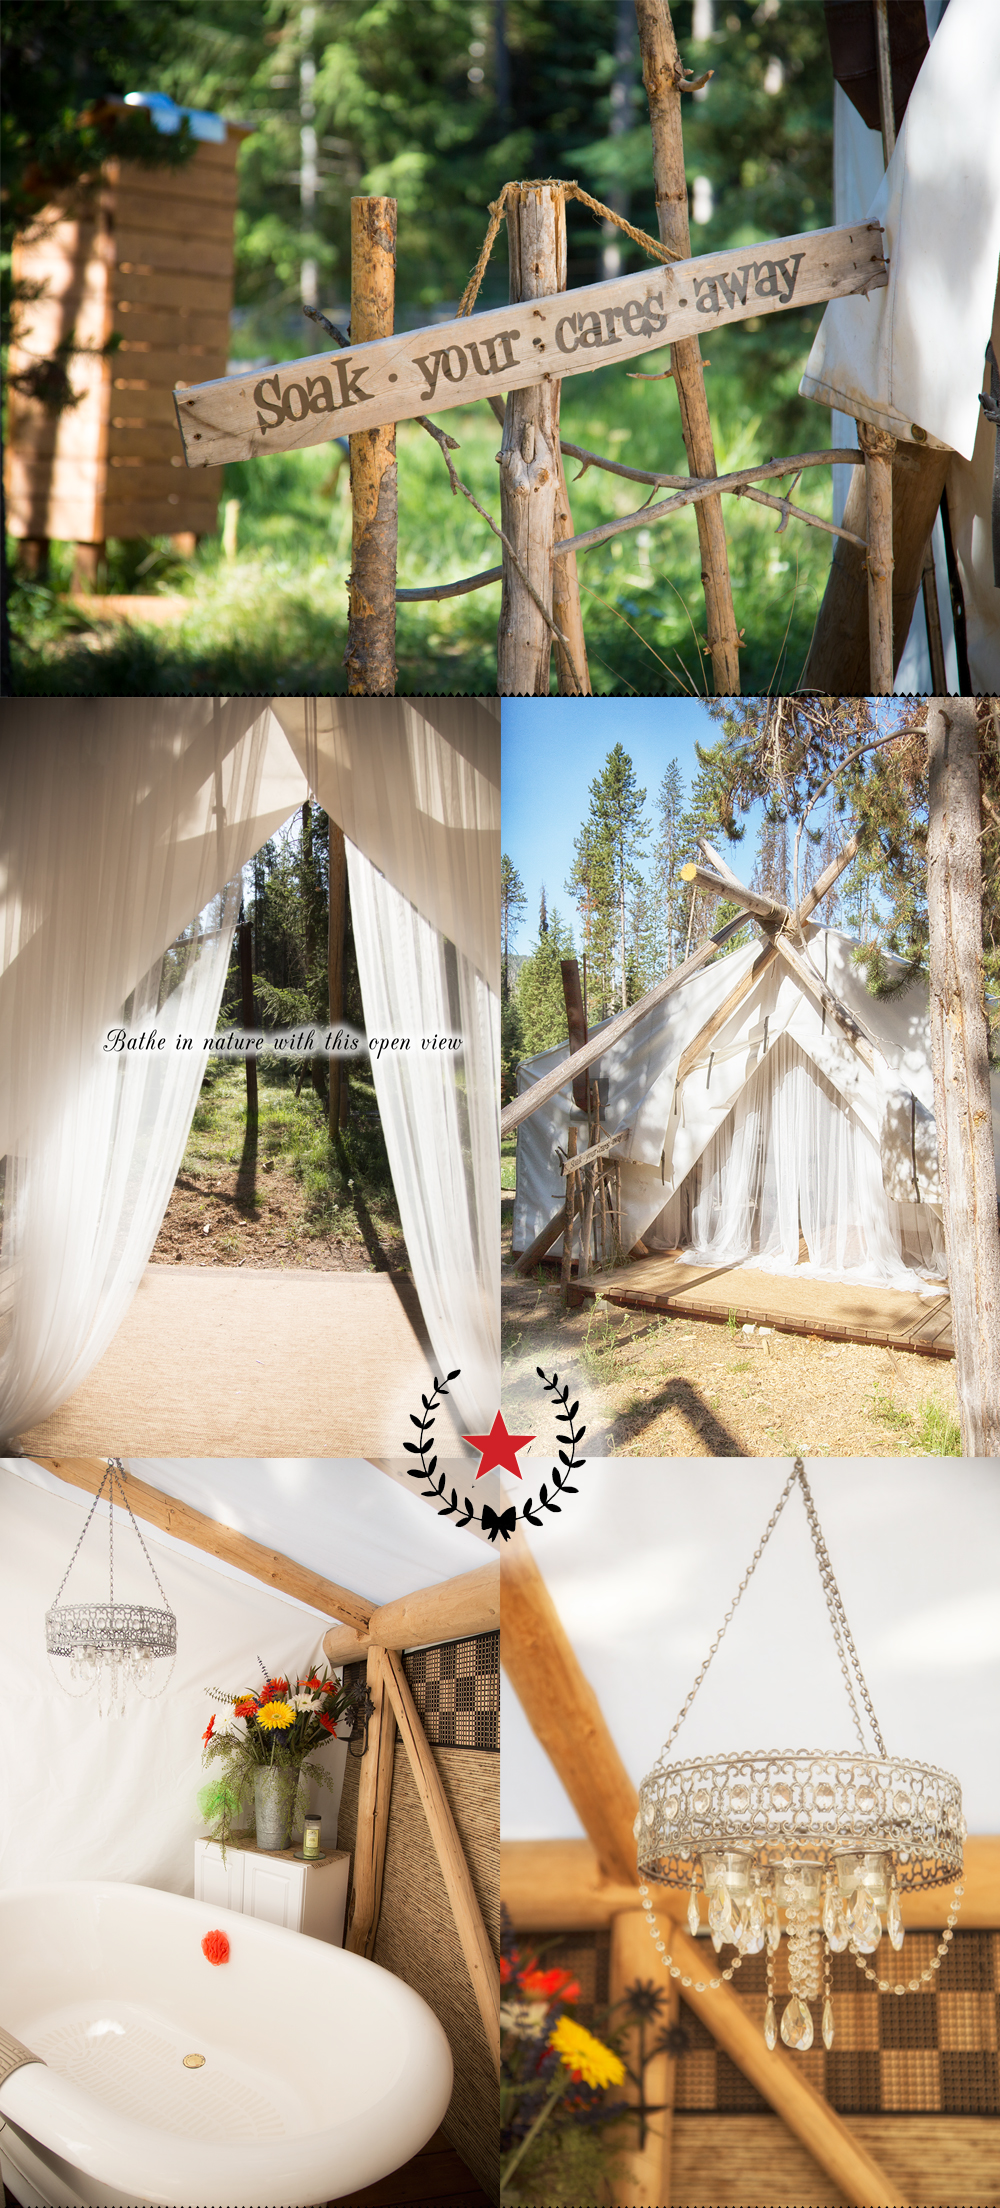 Glamping in the mountains with Storm Creek Outfitters in Idaho